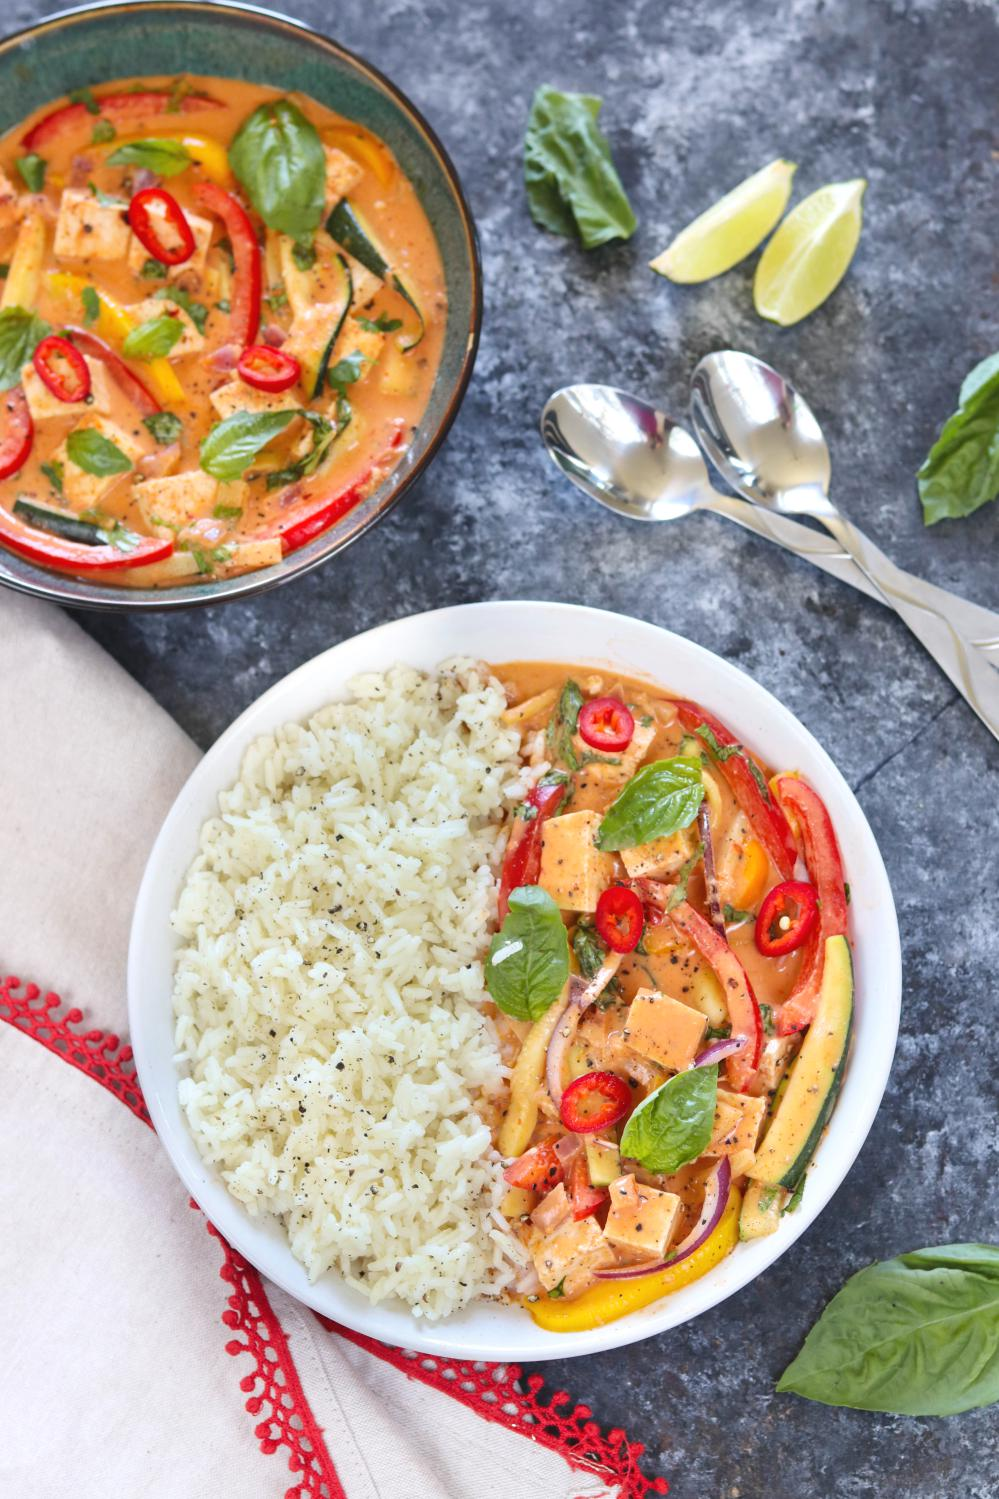 Gluten-free and Vegan Thai Red Curry With Tofu And Vegetables | Ruchiskitchen